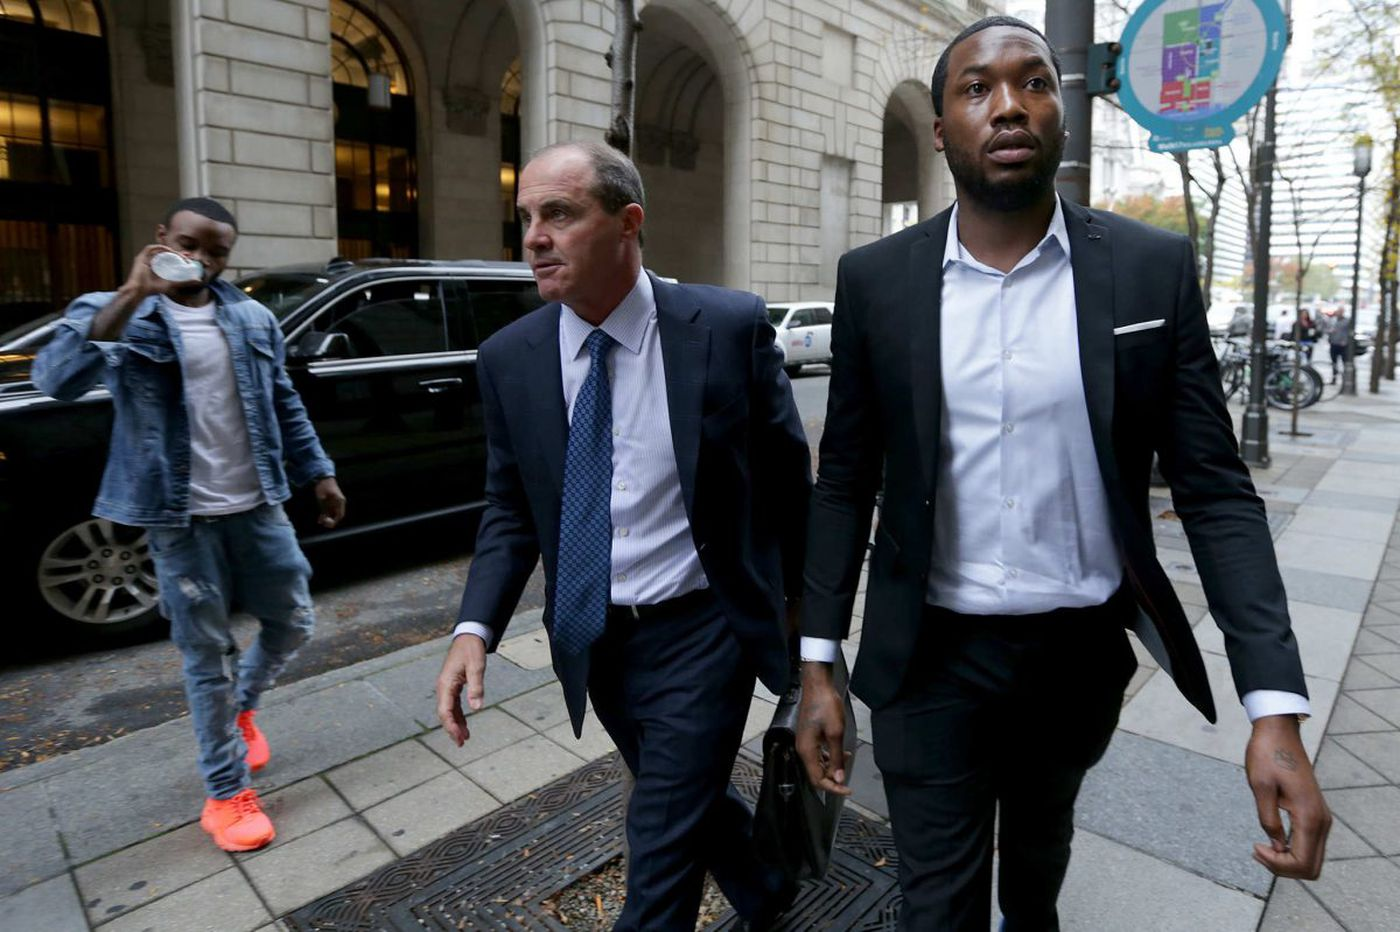 That Meek Mill bail hearing? Scheduled by mistake, court officials say